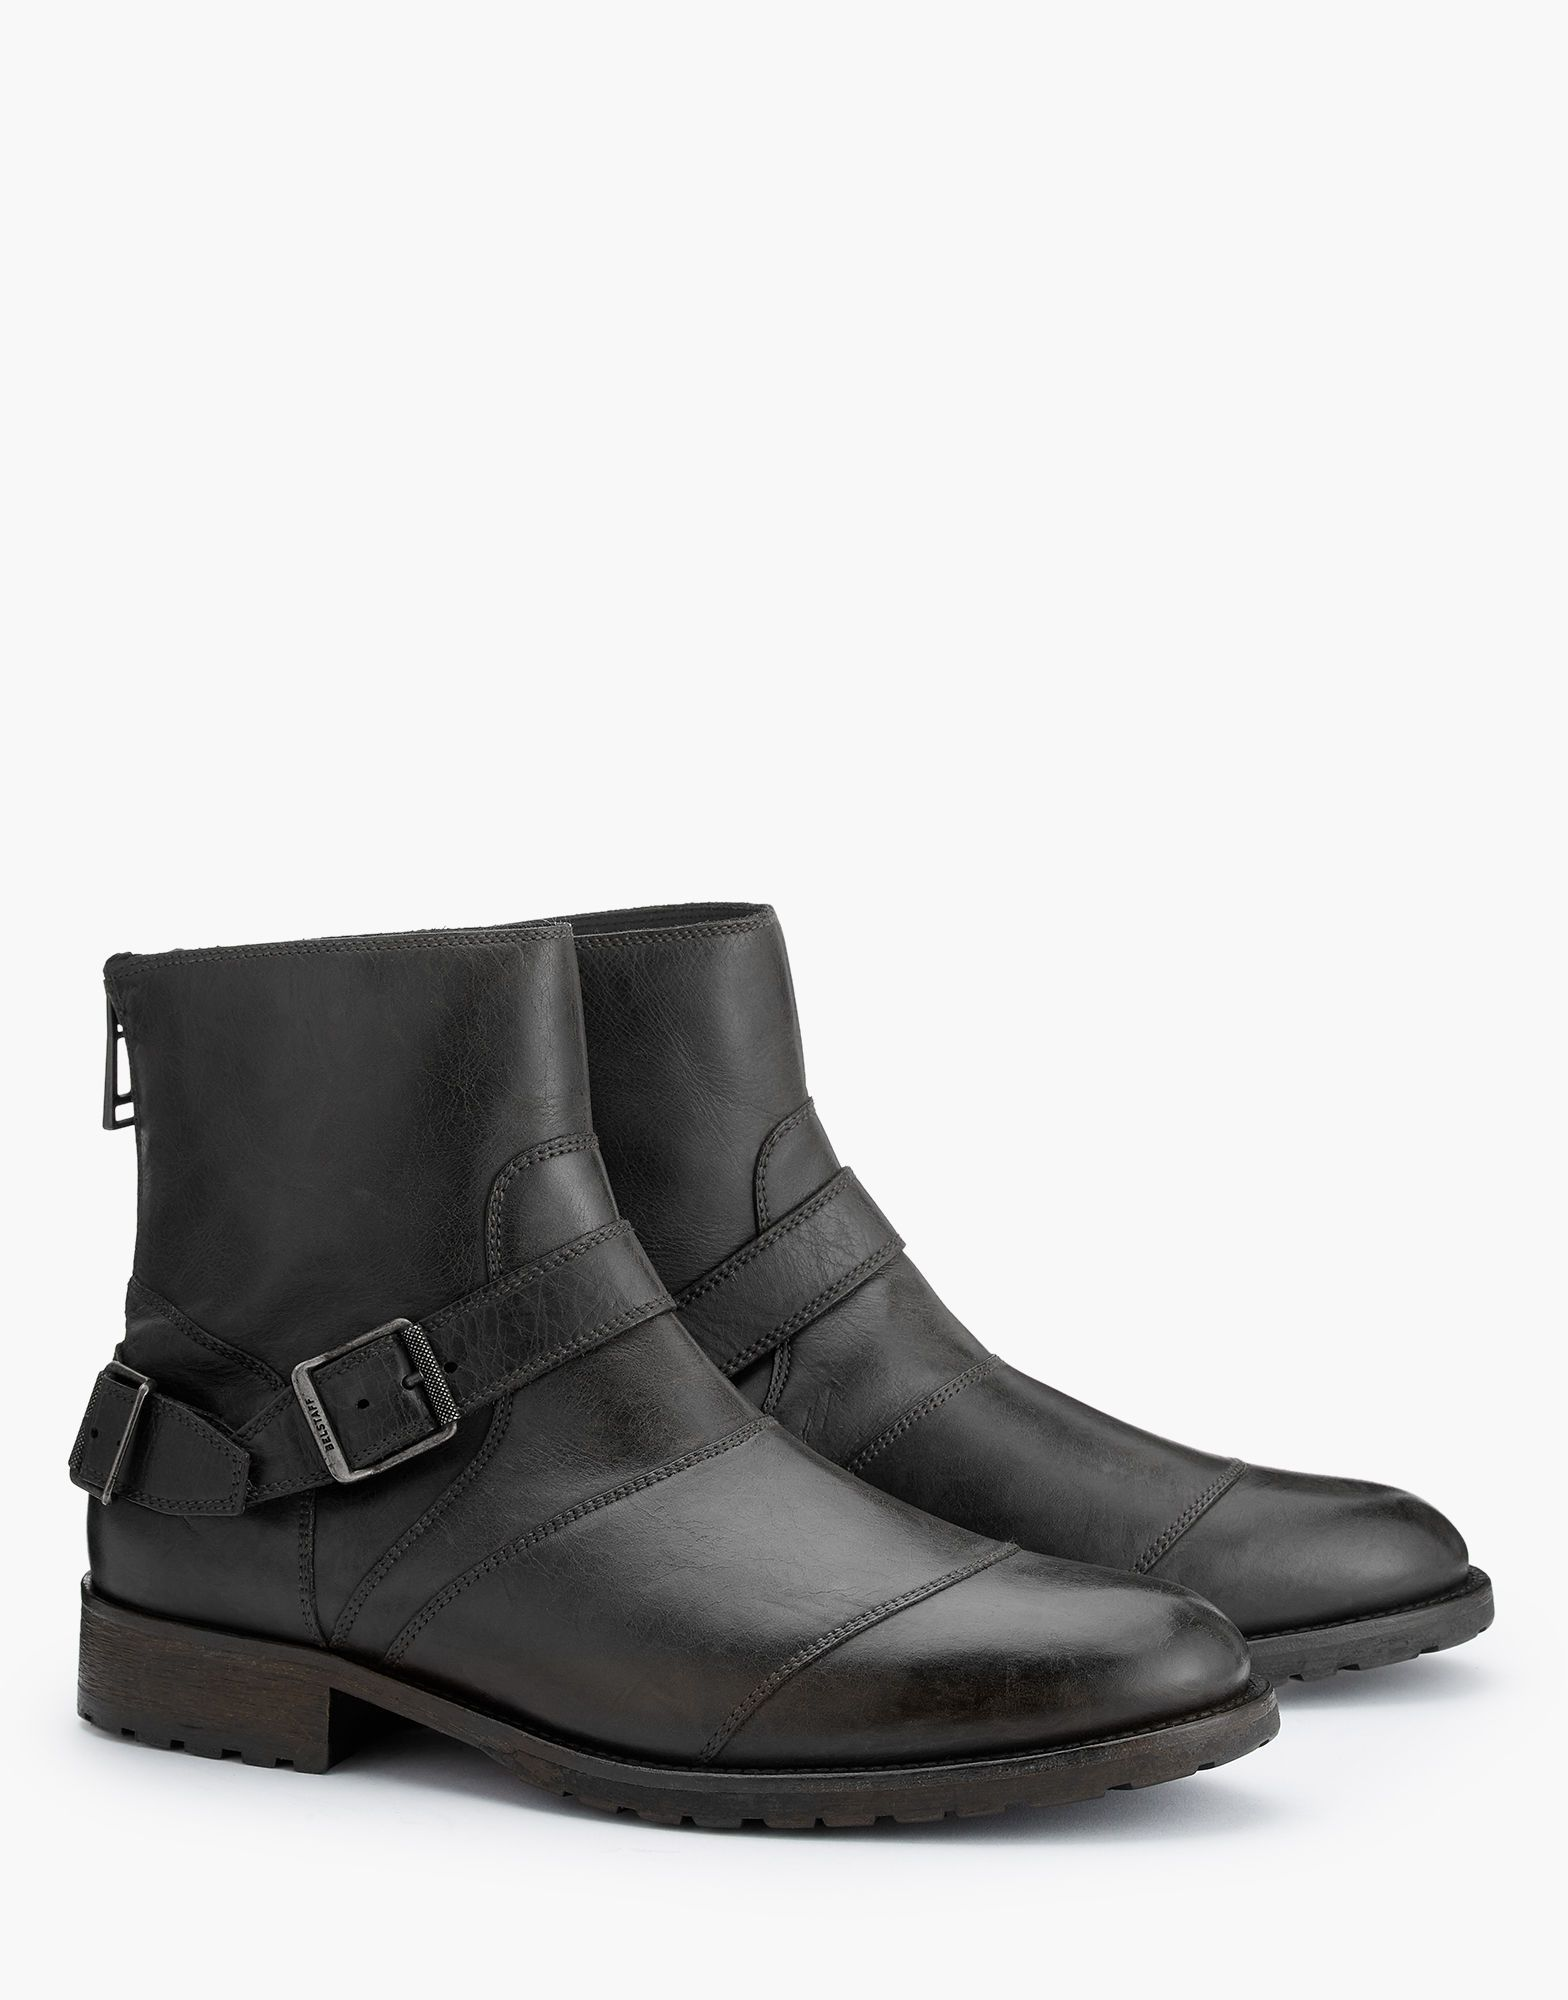 11b86e334e1 Belstaff - Trialmaster Boots - Black Hand Waxed Leather | Boots ...